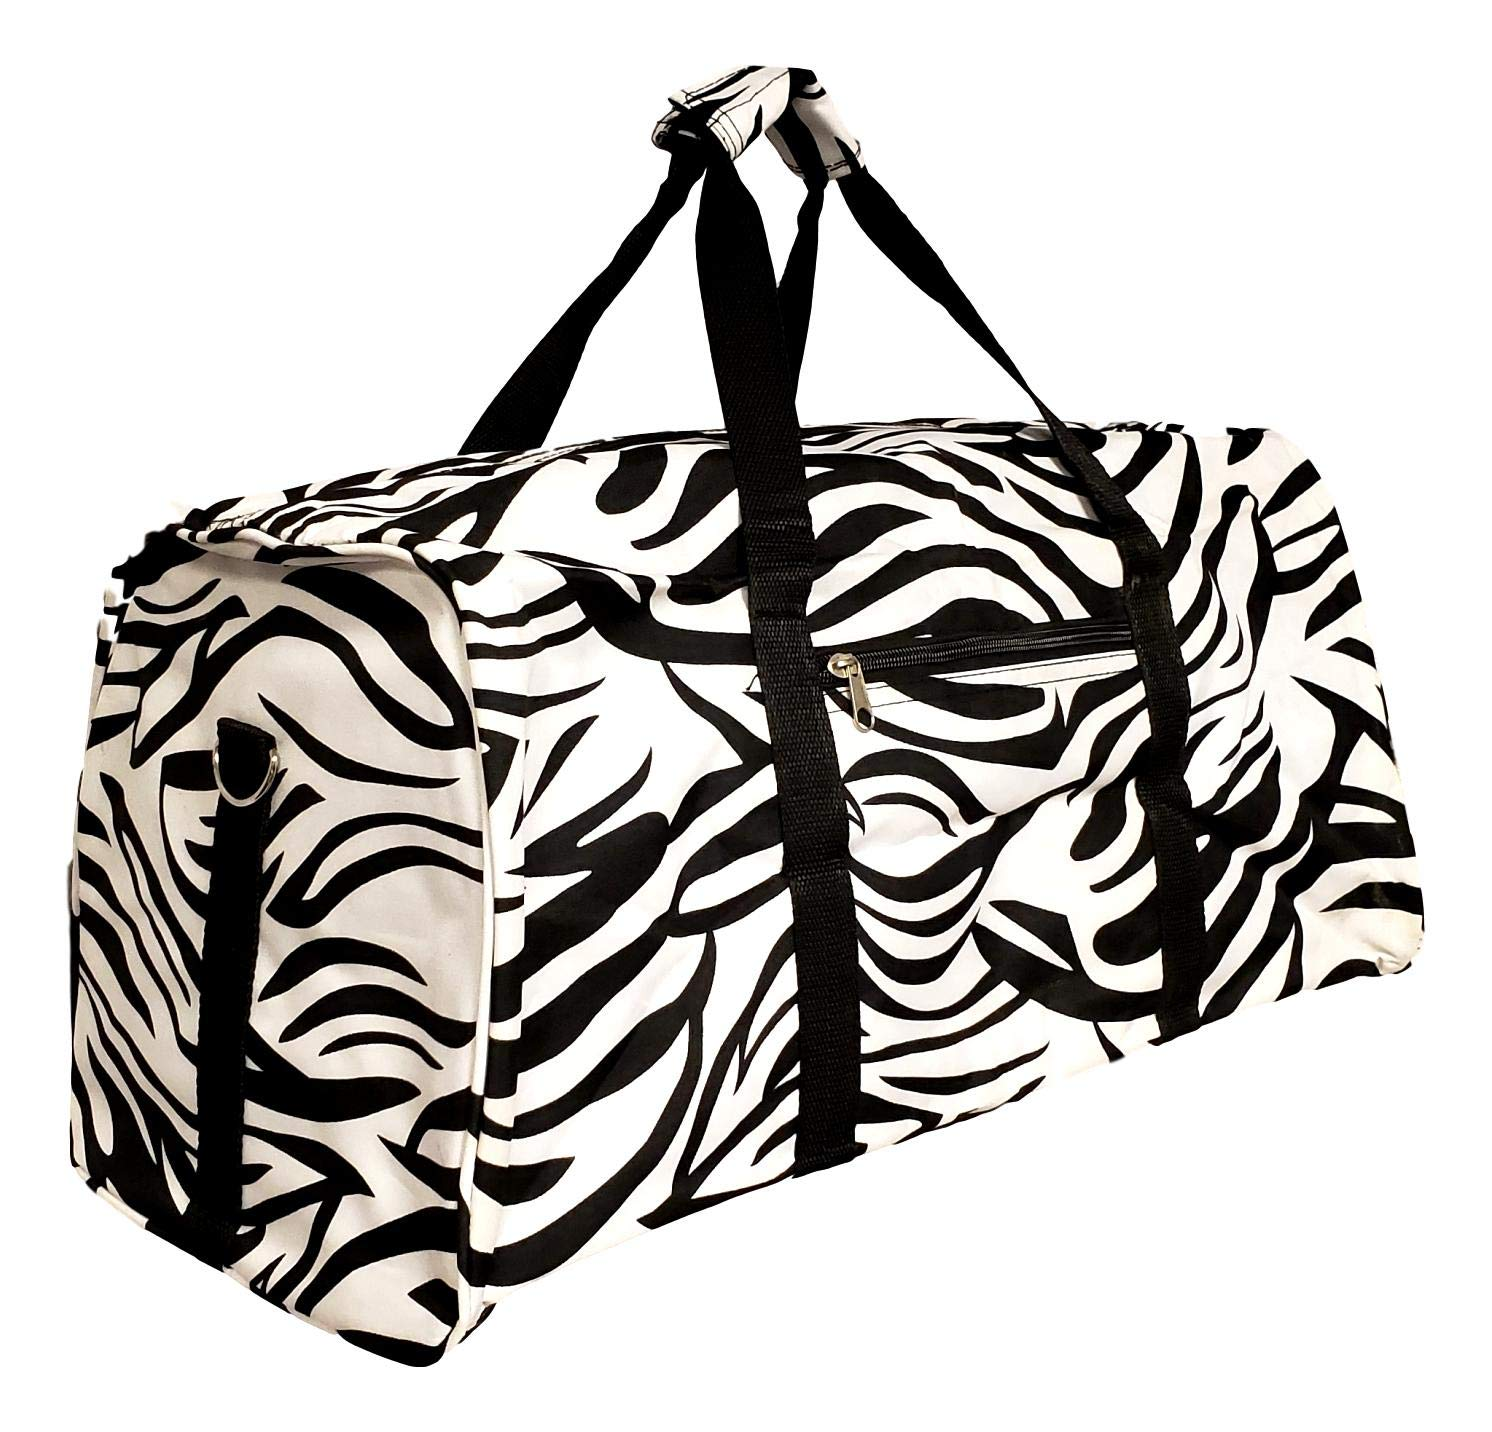 Custom Personalized 21 in Print Duffle Carry on Bag with Outside Pocket and Shoulder Strap Overnight Black White Zebra